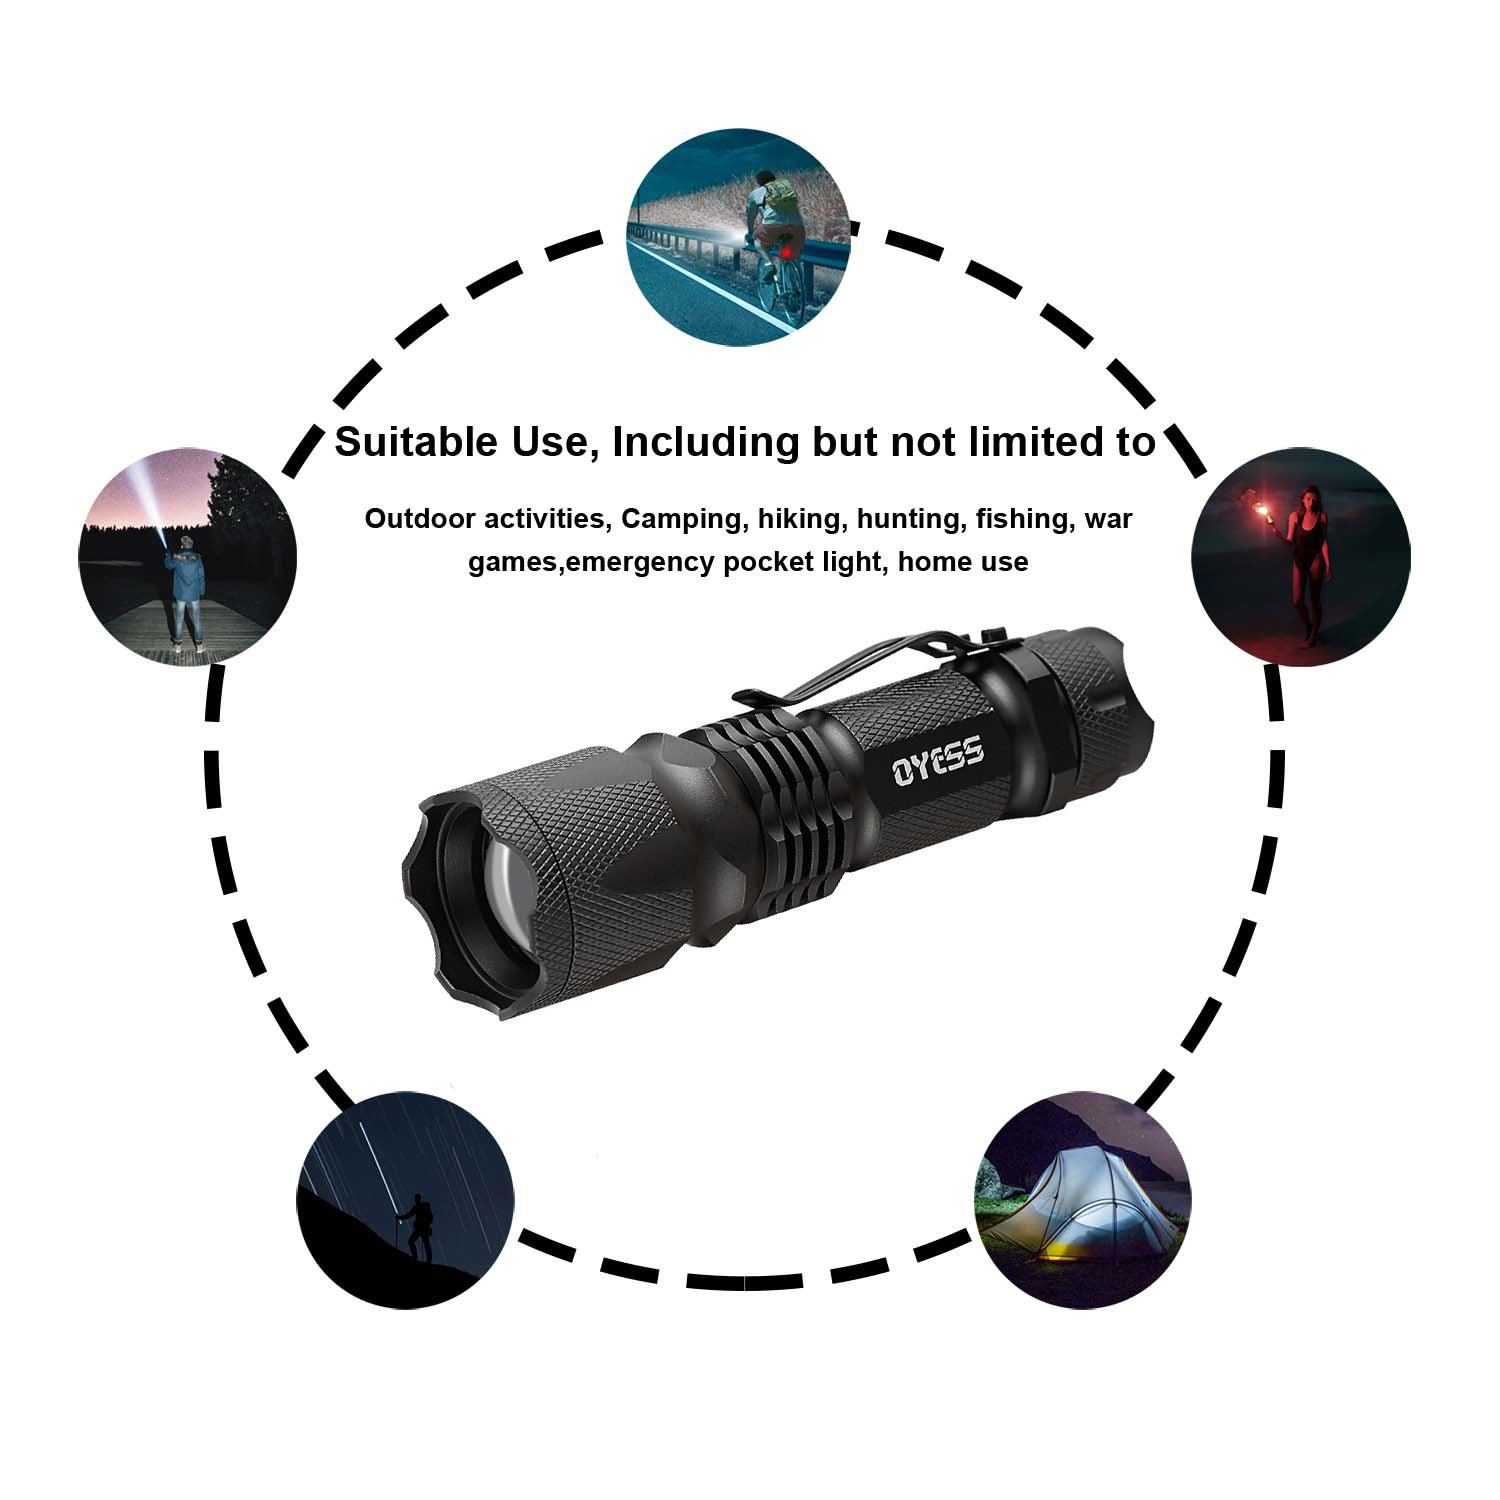 1000 Lumen Output Portable LED Flashlight with 5 Beam Modes /& Adjustable Focus Comes with Rechargeable 18650 Battery /& Charger OYESS Tactical Flashlight- Super Bright